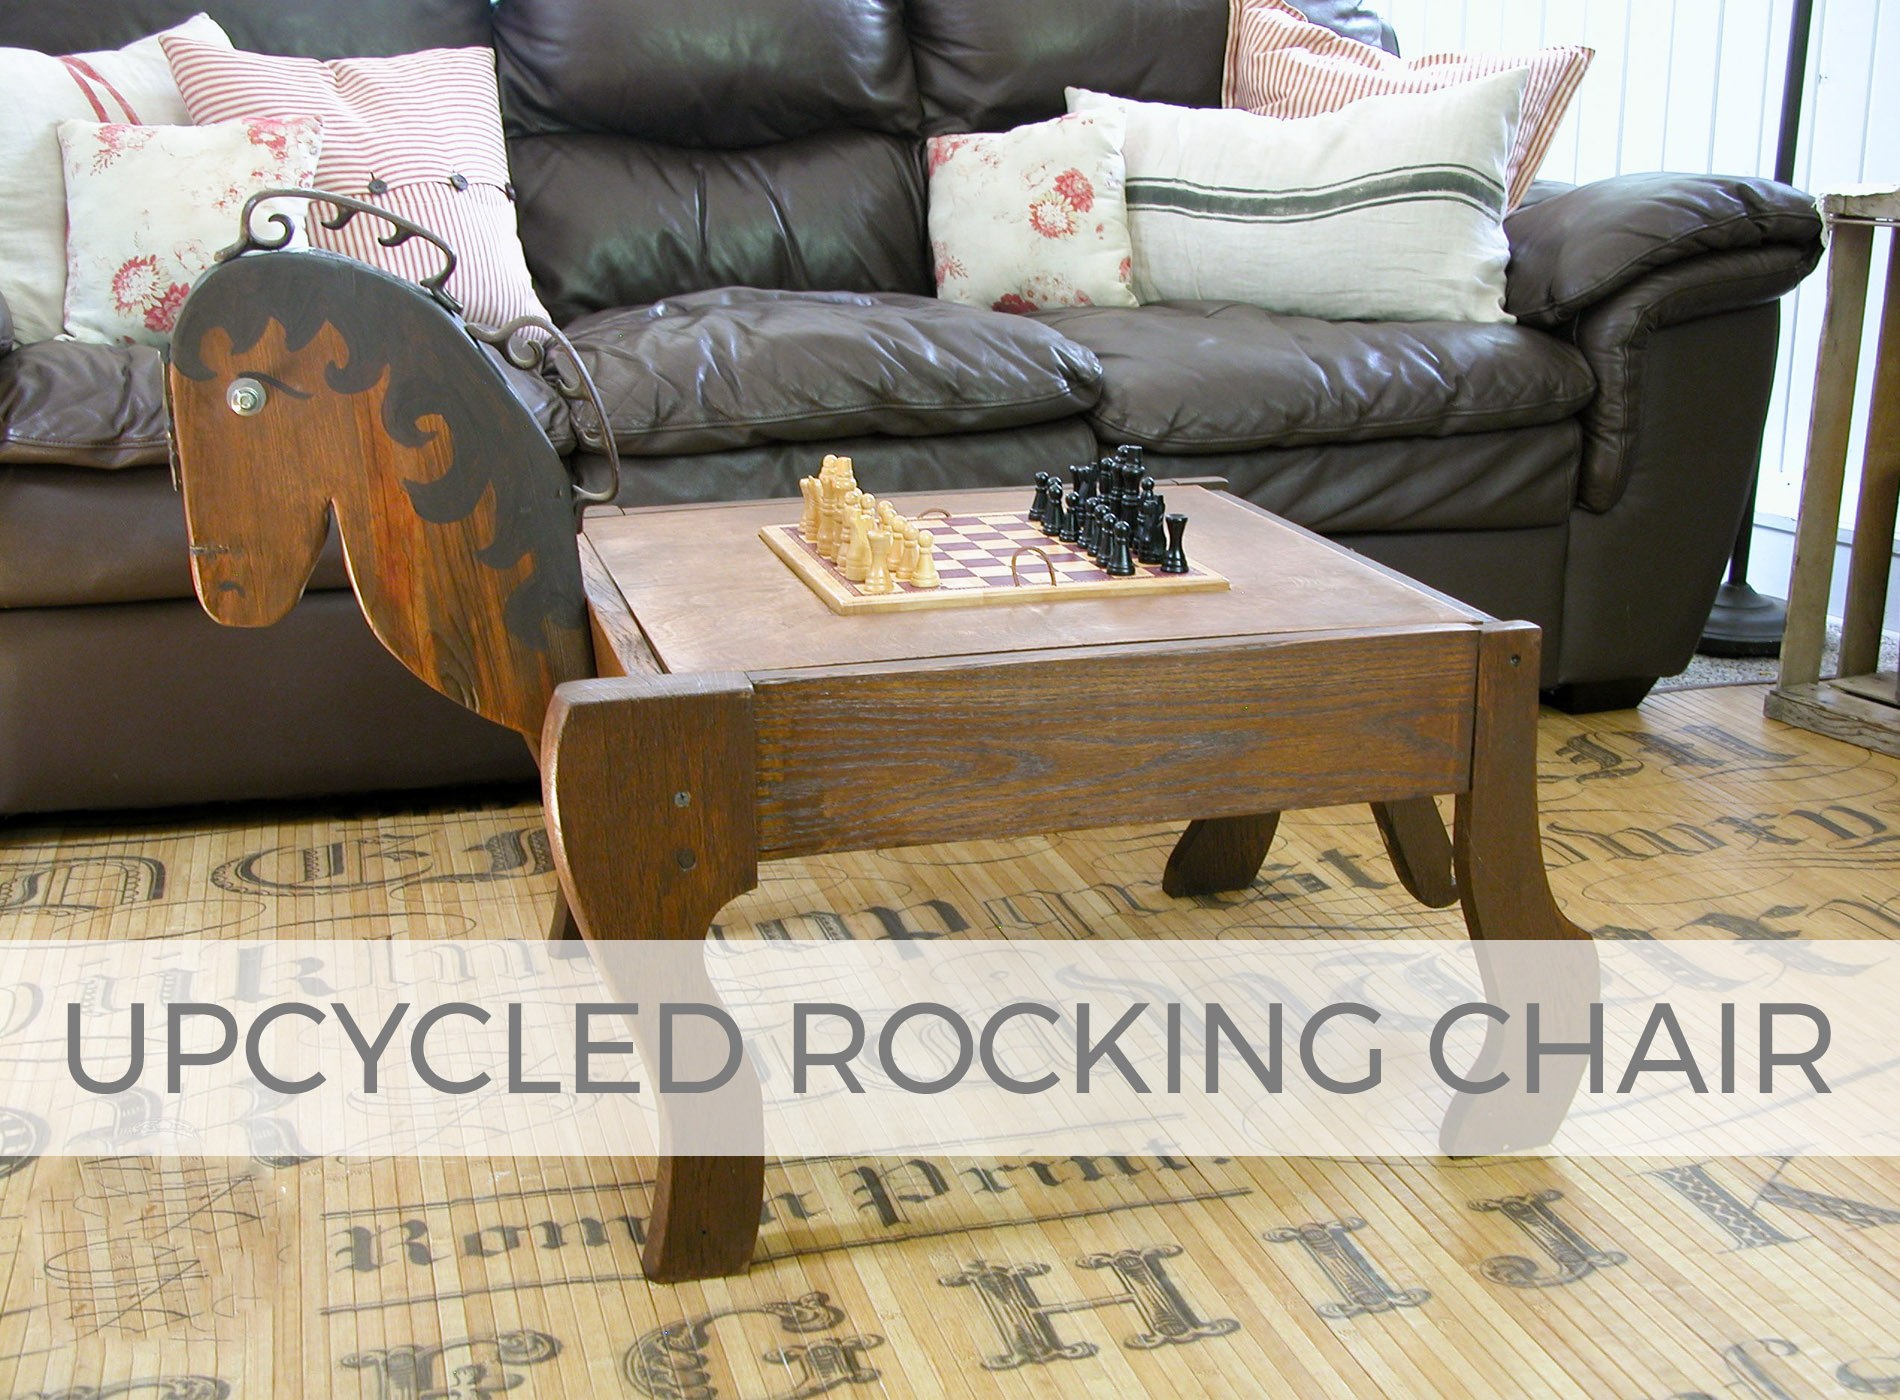 Upcycled Rocking Chair into Game Chair by Larissa of Prodigal Pieces | prodigalpieces.com #prodigalpieces